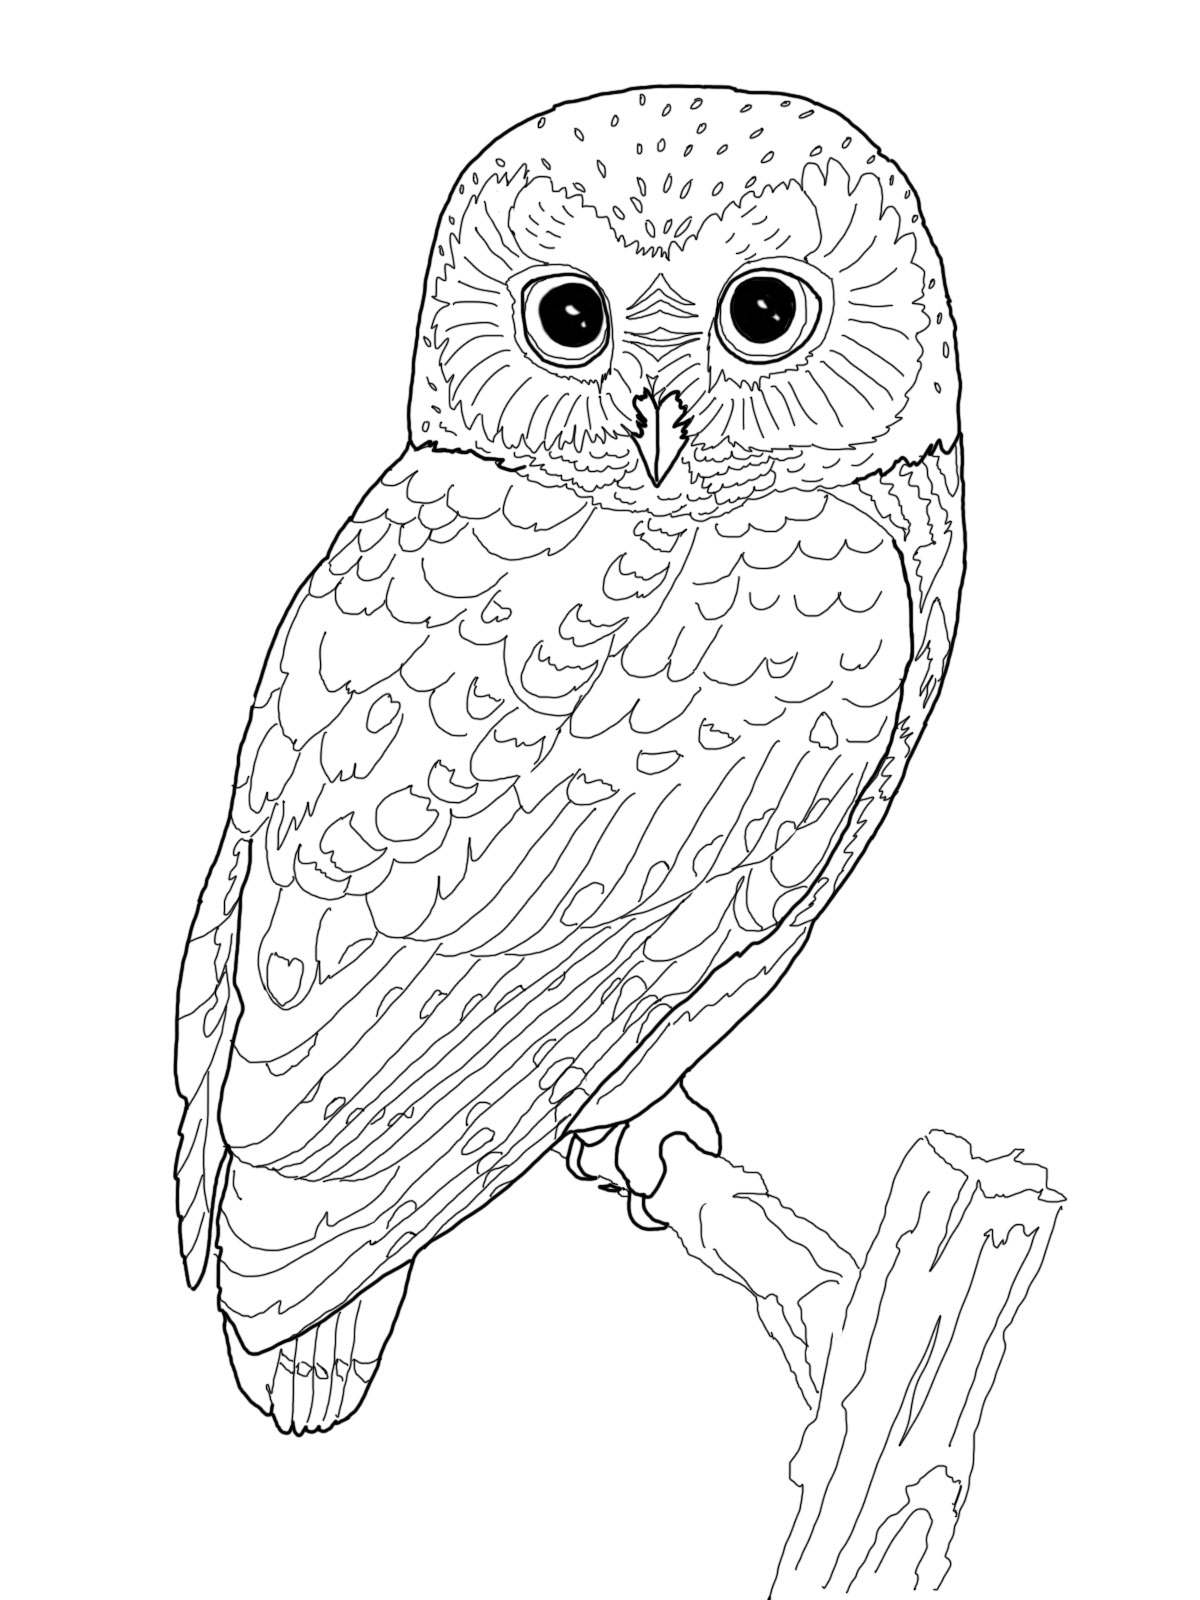 owl images to color 10 difficult owl coloring page for adults images color to owl